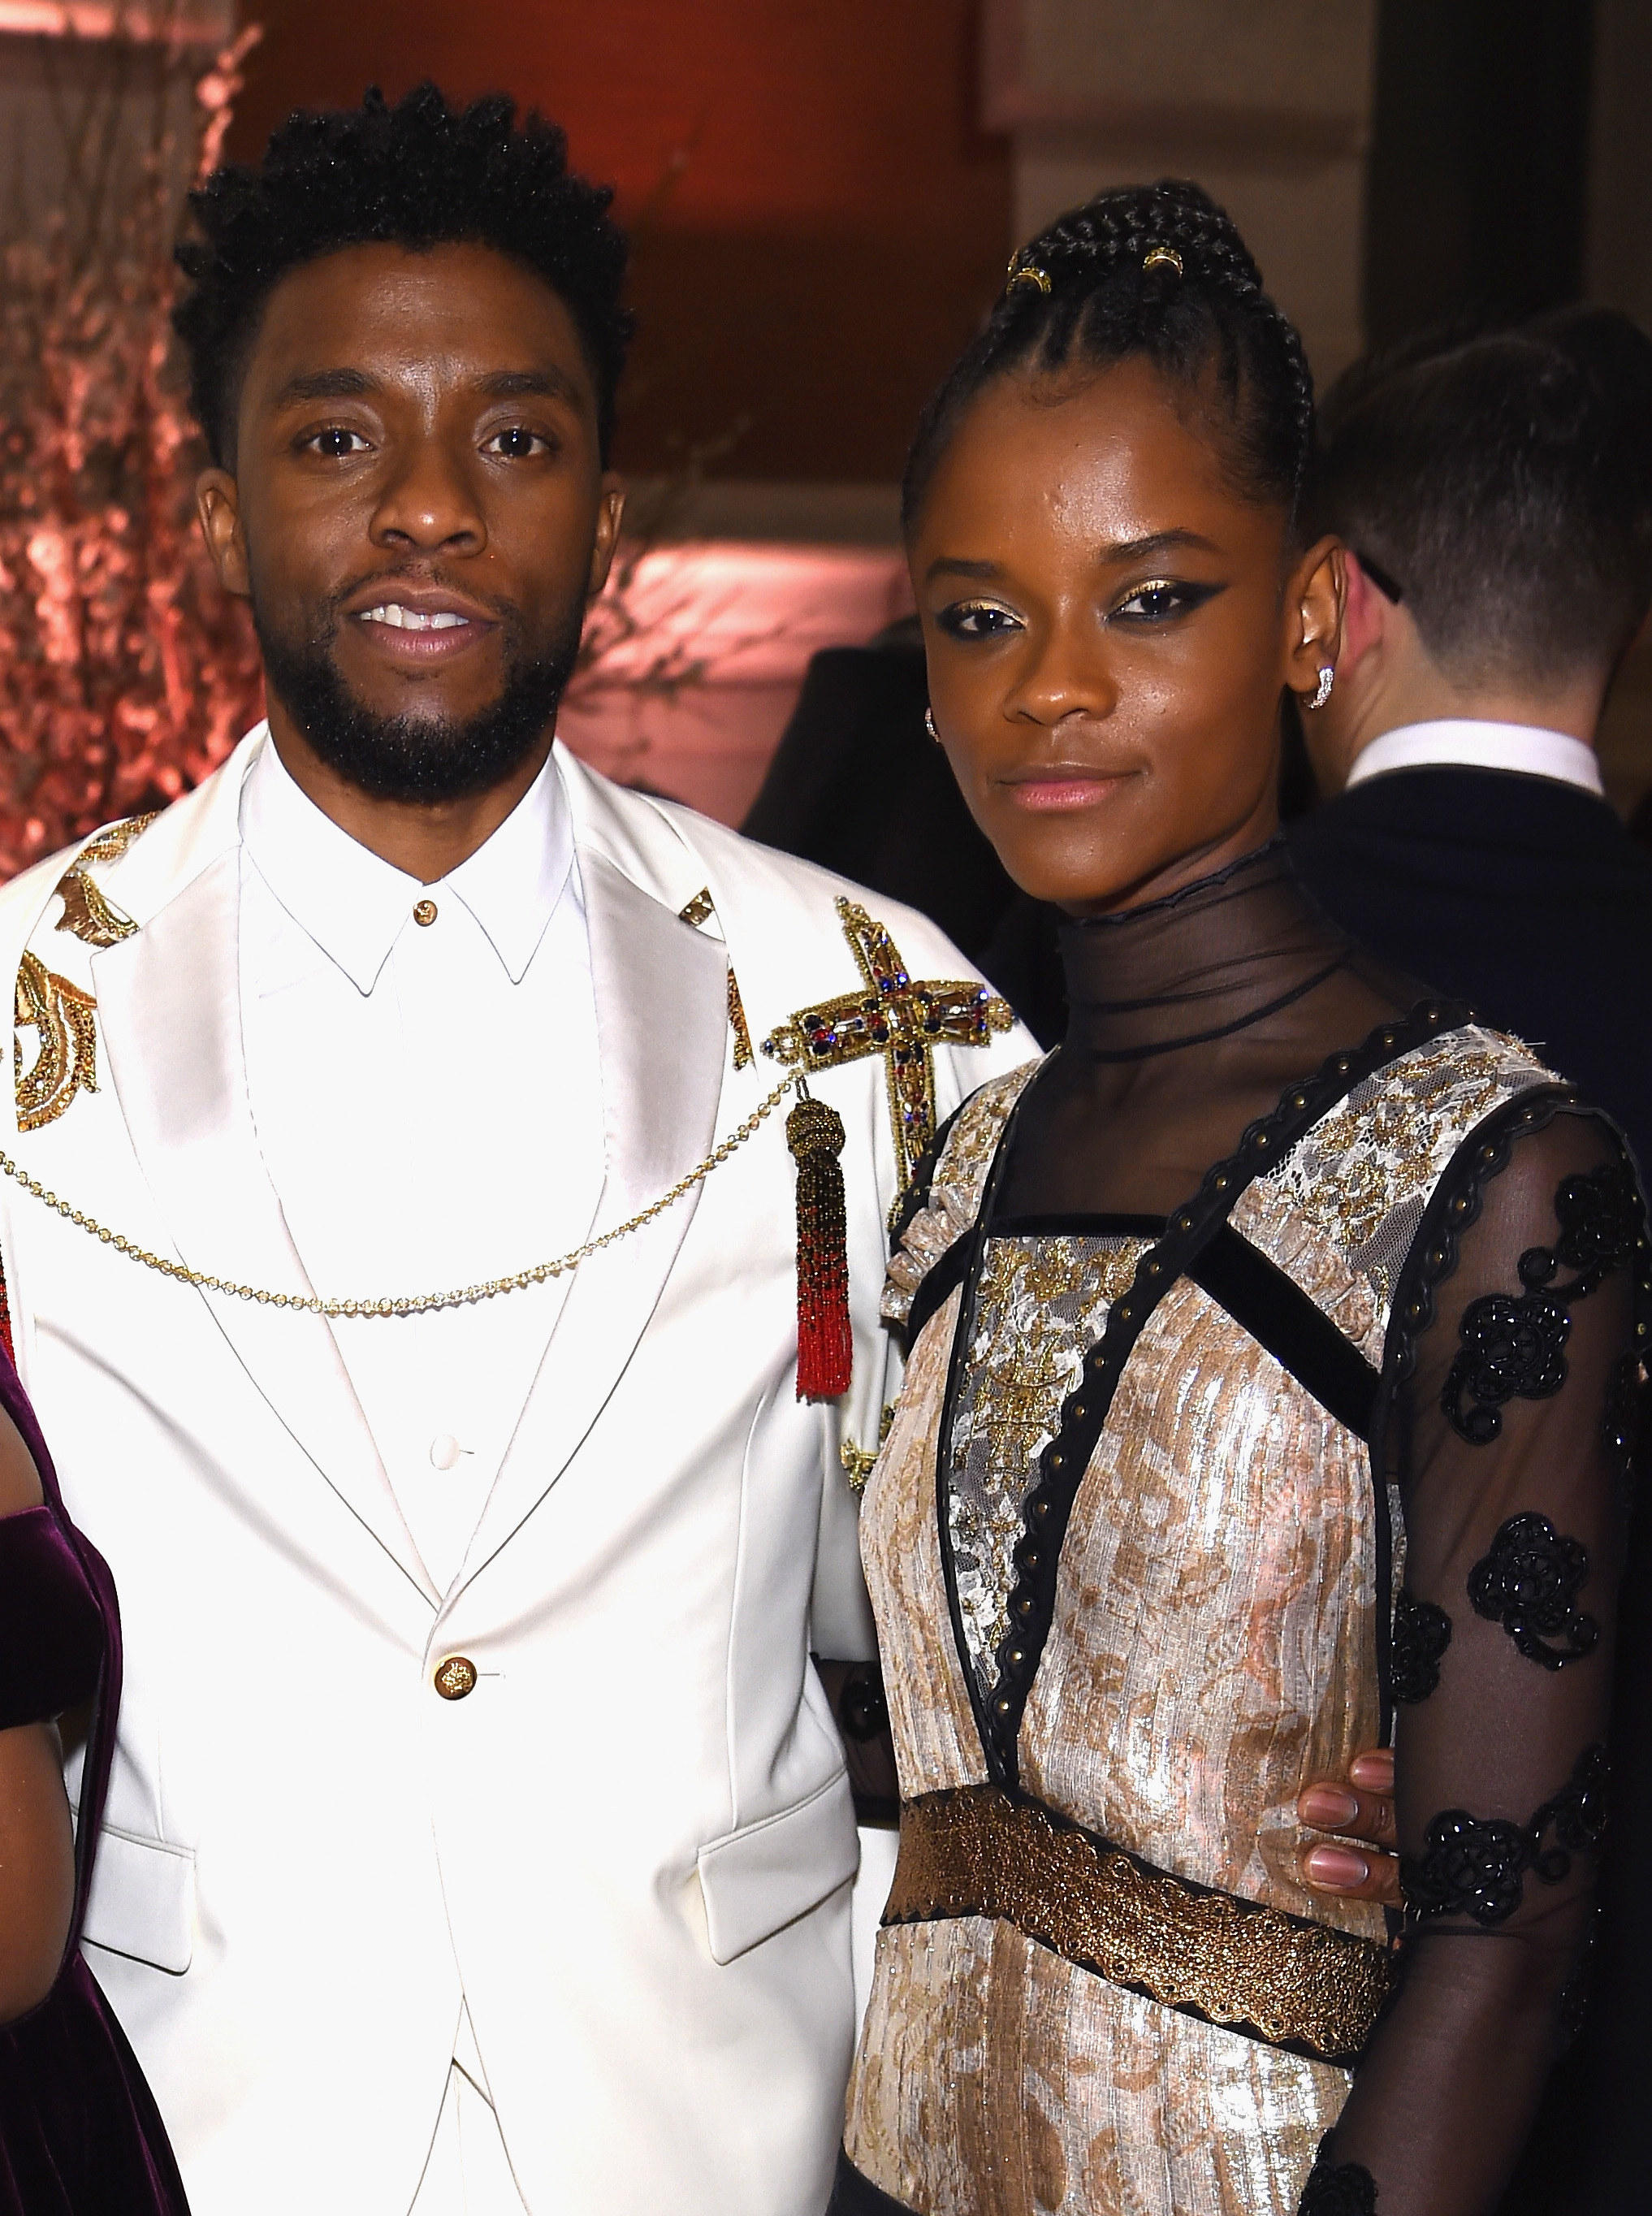 Letitia Wright and Chadwick Boseman attend the Heavenly Bodies: Fashion & The Catholic Imagination Costume Institute Gala at The Metropolitan Museum of Art on May 7, 2018 in New York City.